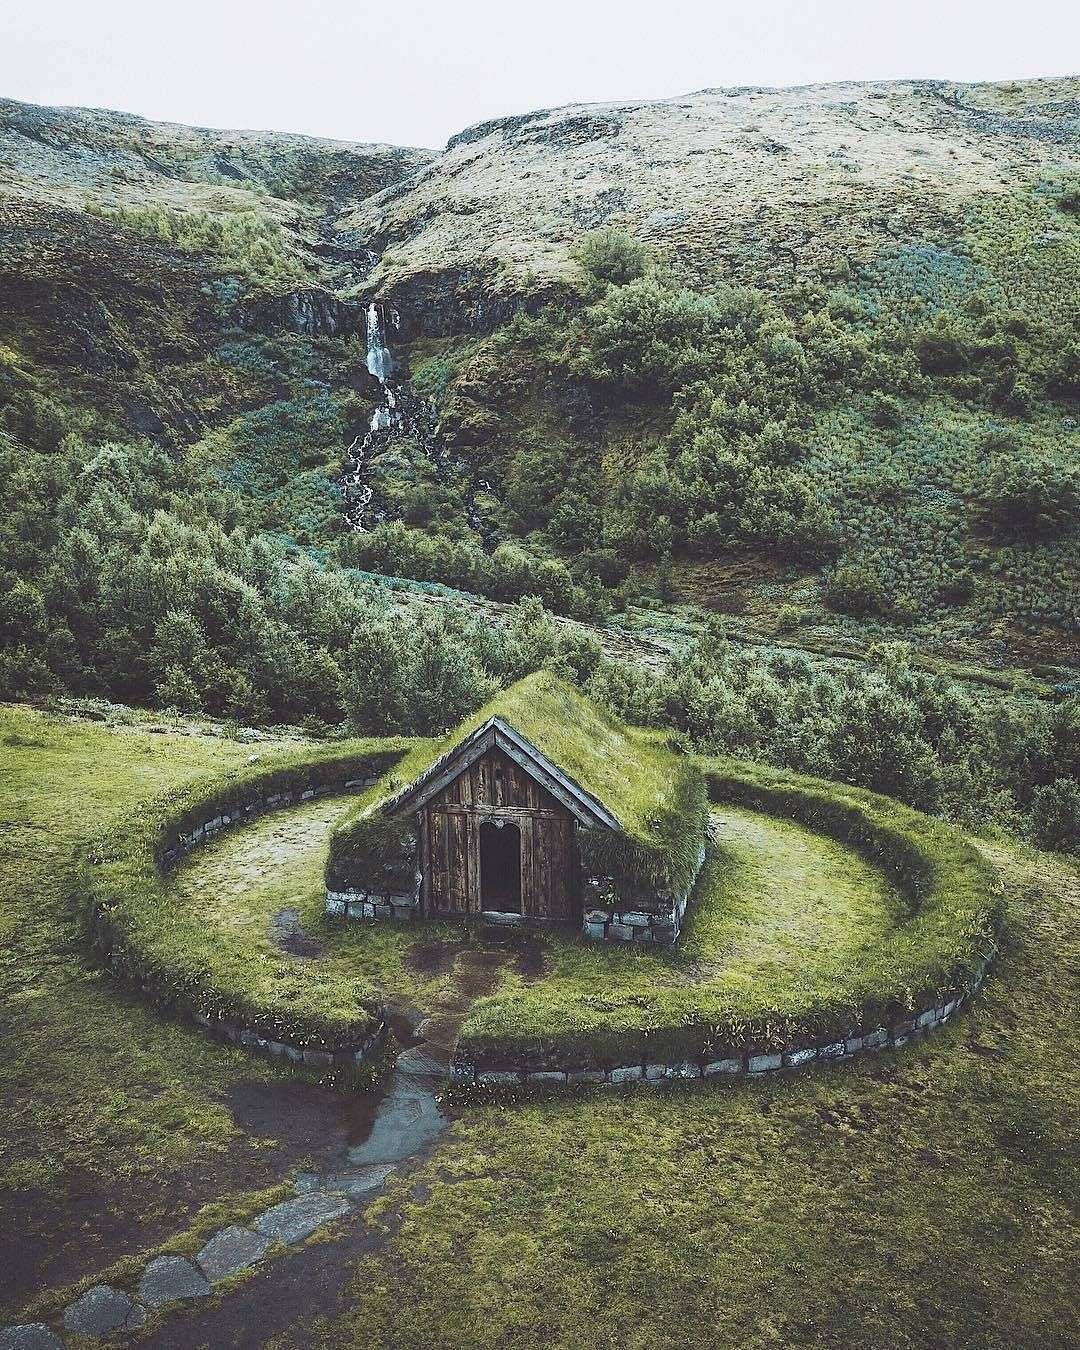 Cozy Homeinteriors: What Do You Think Of This Cozy Little Cabin In Iceland